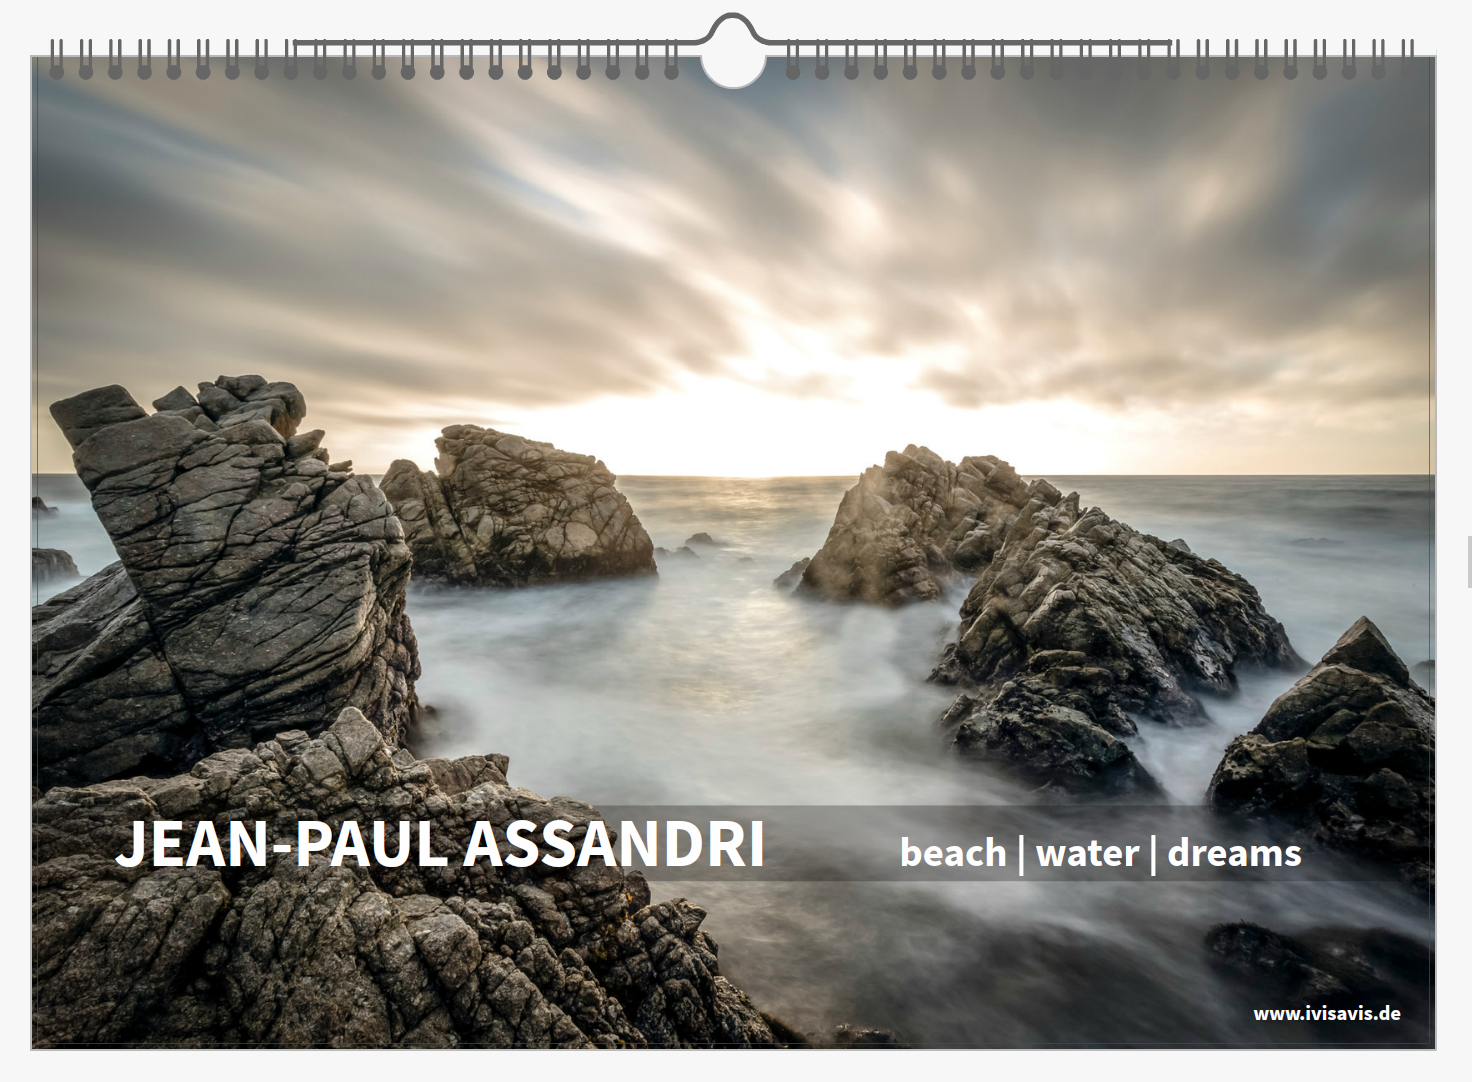 beach | water | dreams - Kalender für 2019